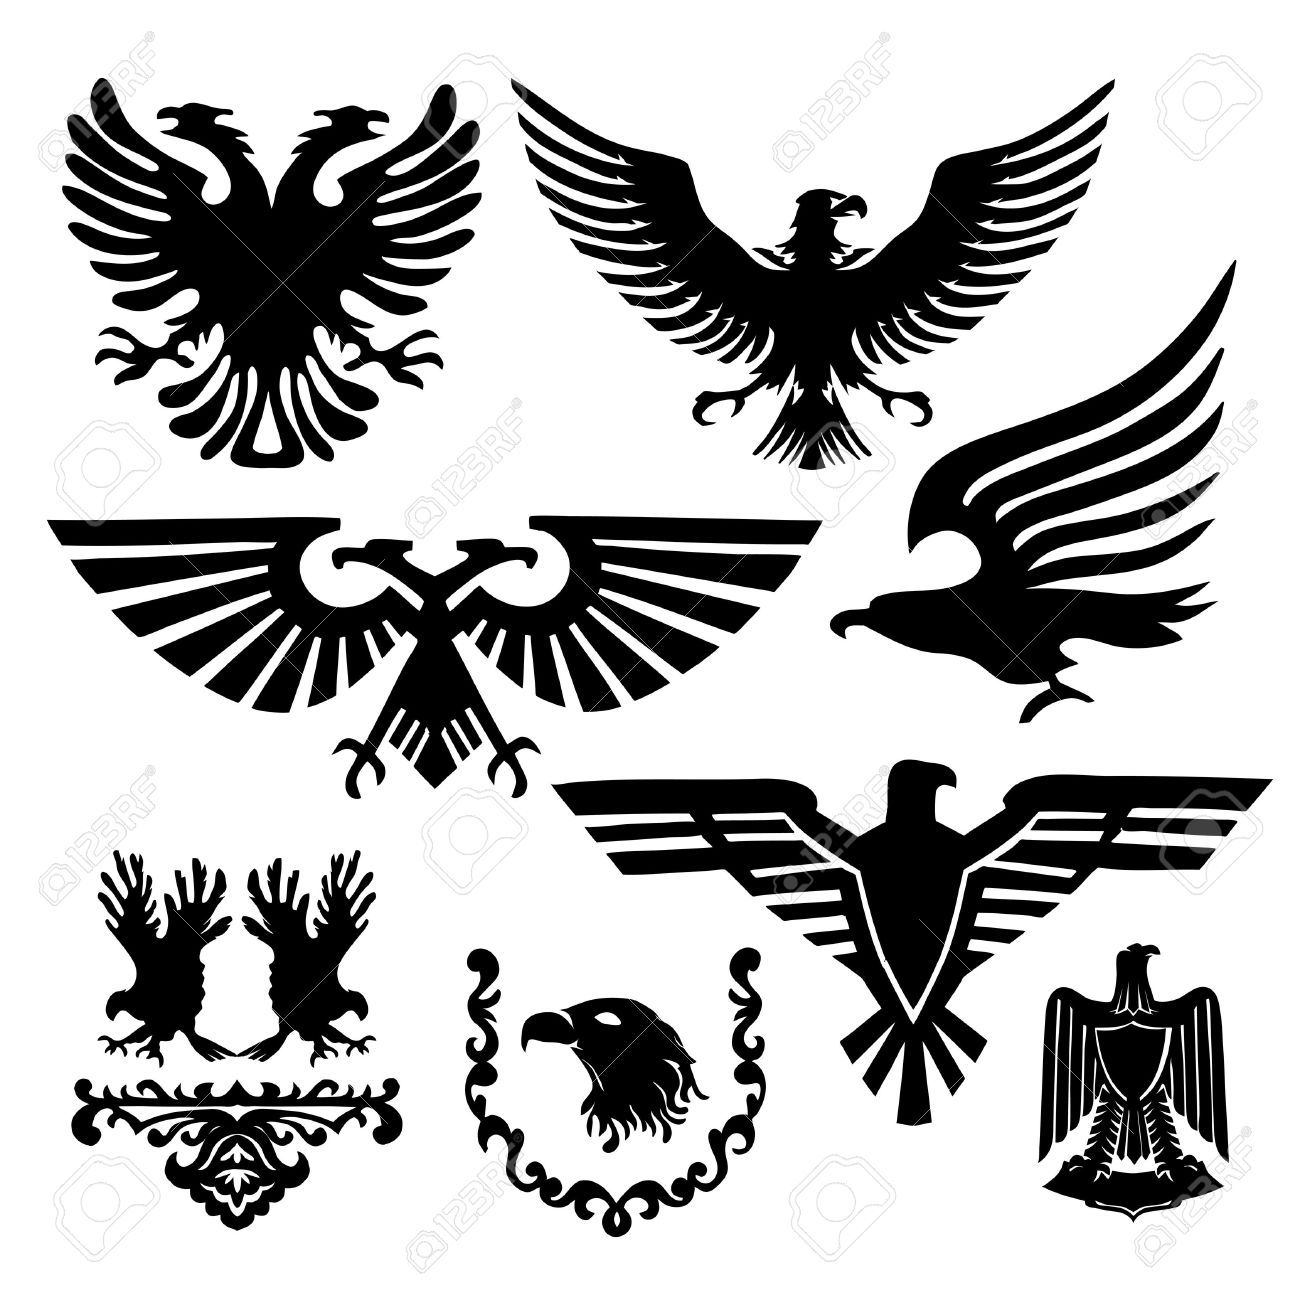 Eagle stock photos images royalty free eagle images and pictures eagle stock photos images royalty free eagle images and pictures biocorpaavc Gallery